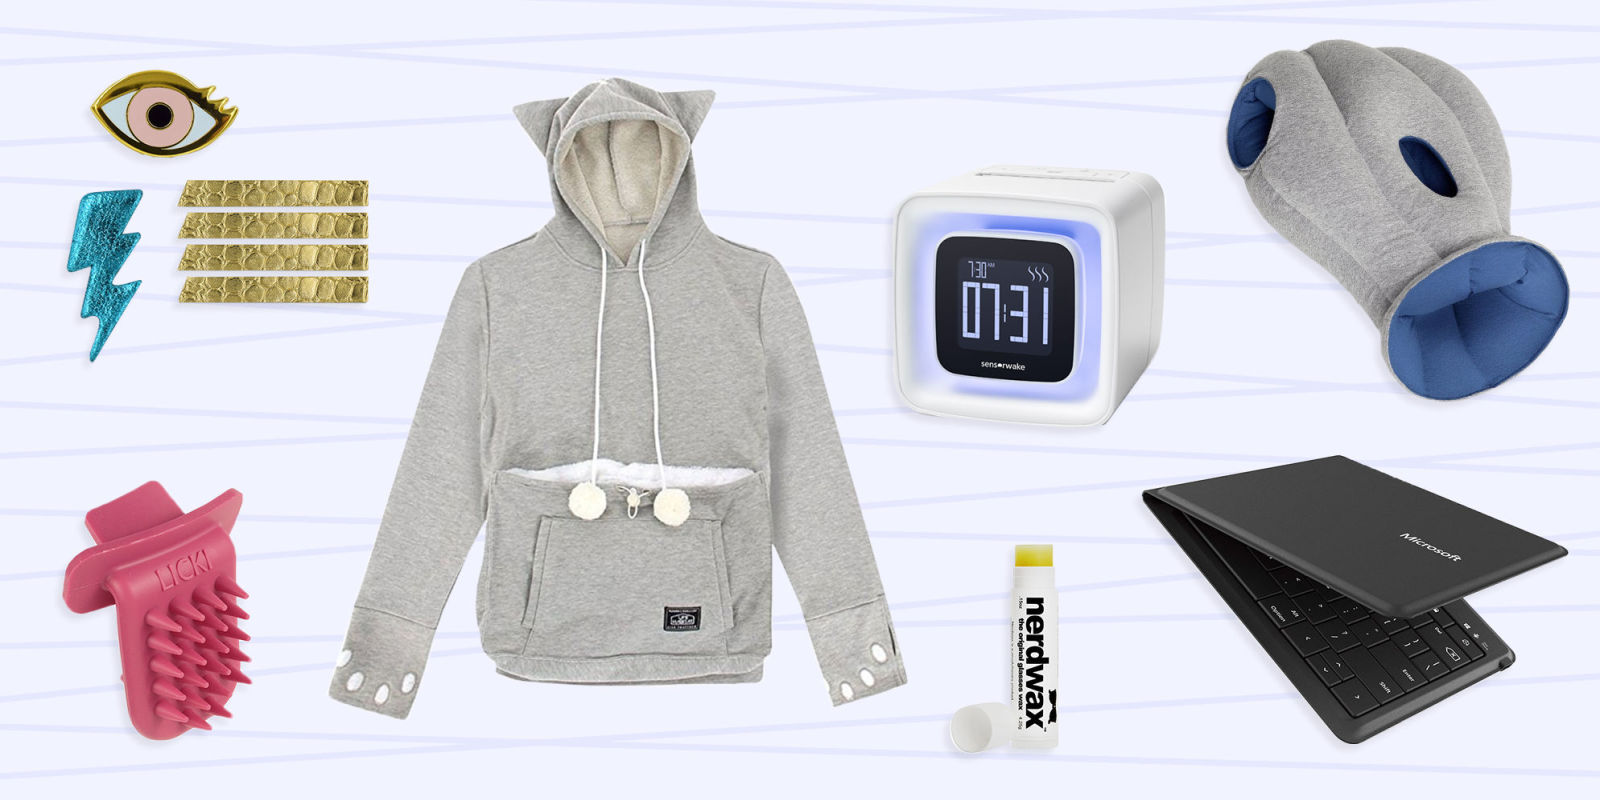 27 Cool Things To Buy In 2016 - Awesome Stuff To Buy ...